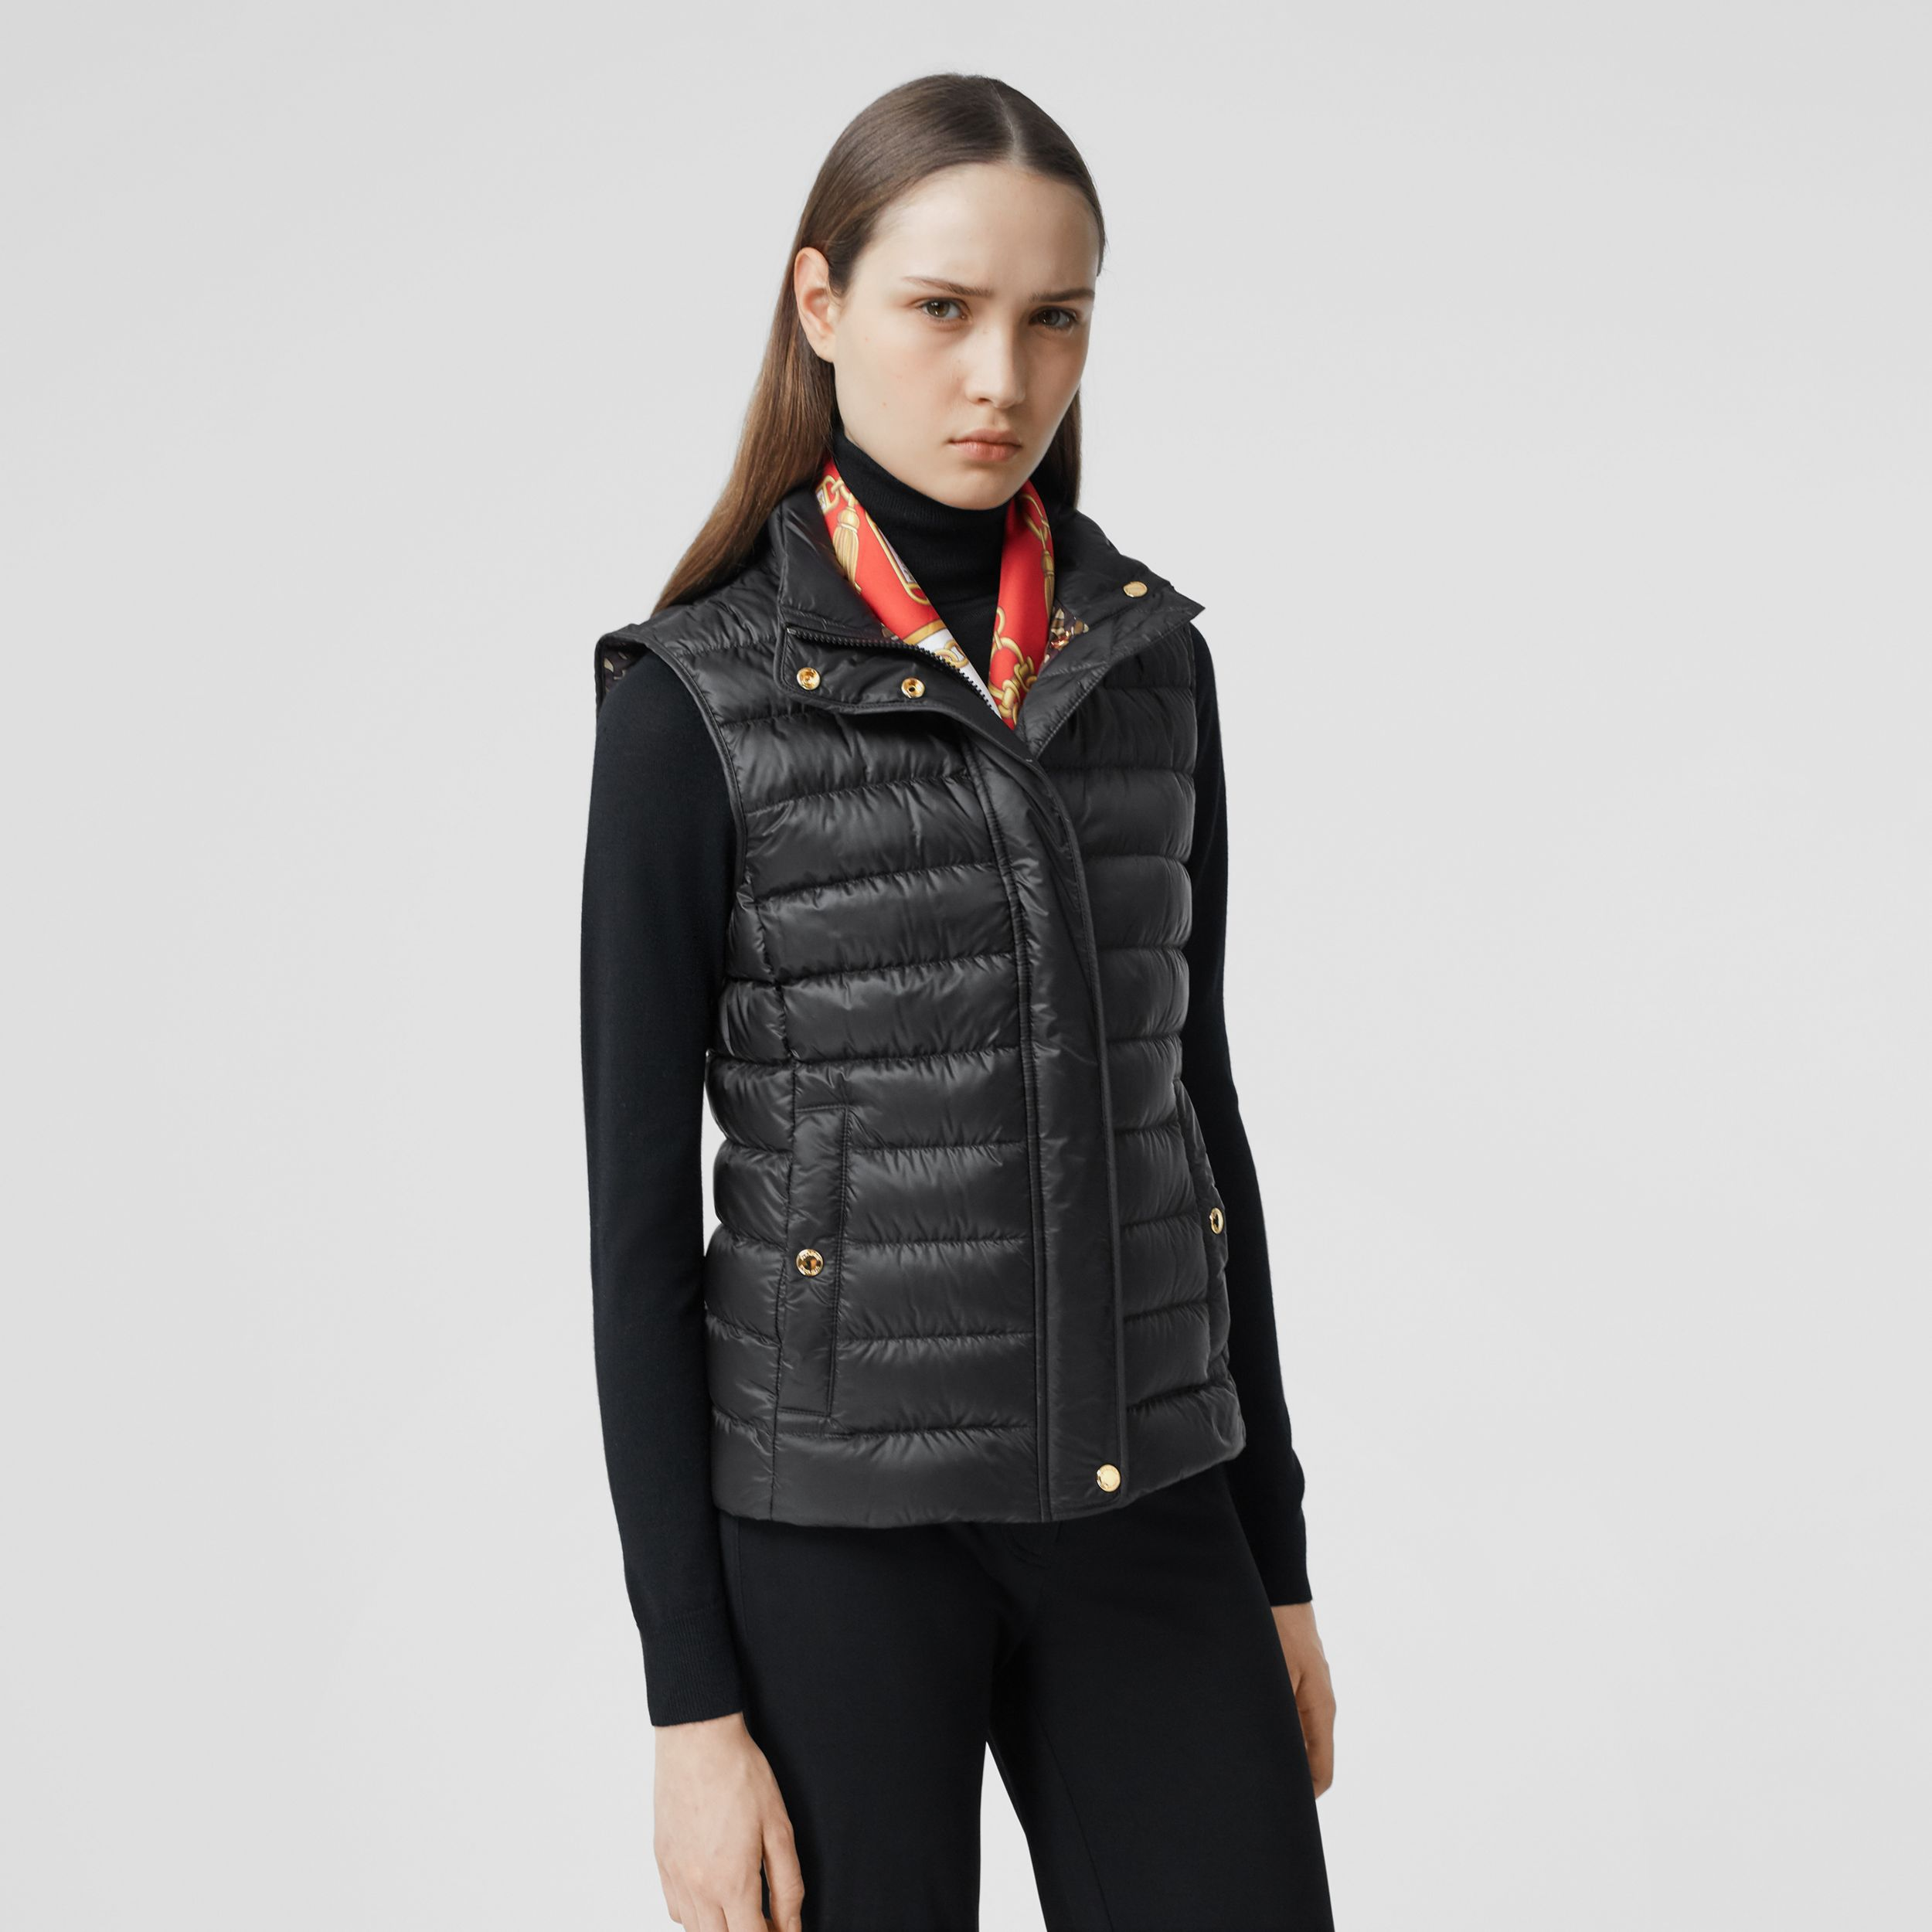 Monogram Print-lined Lightweight Puffer Gilet in Black - Women | Burberry - 1